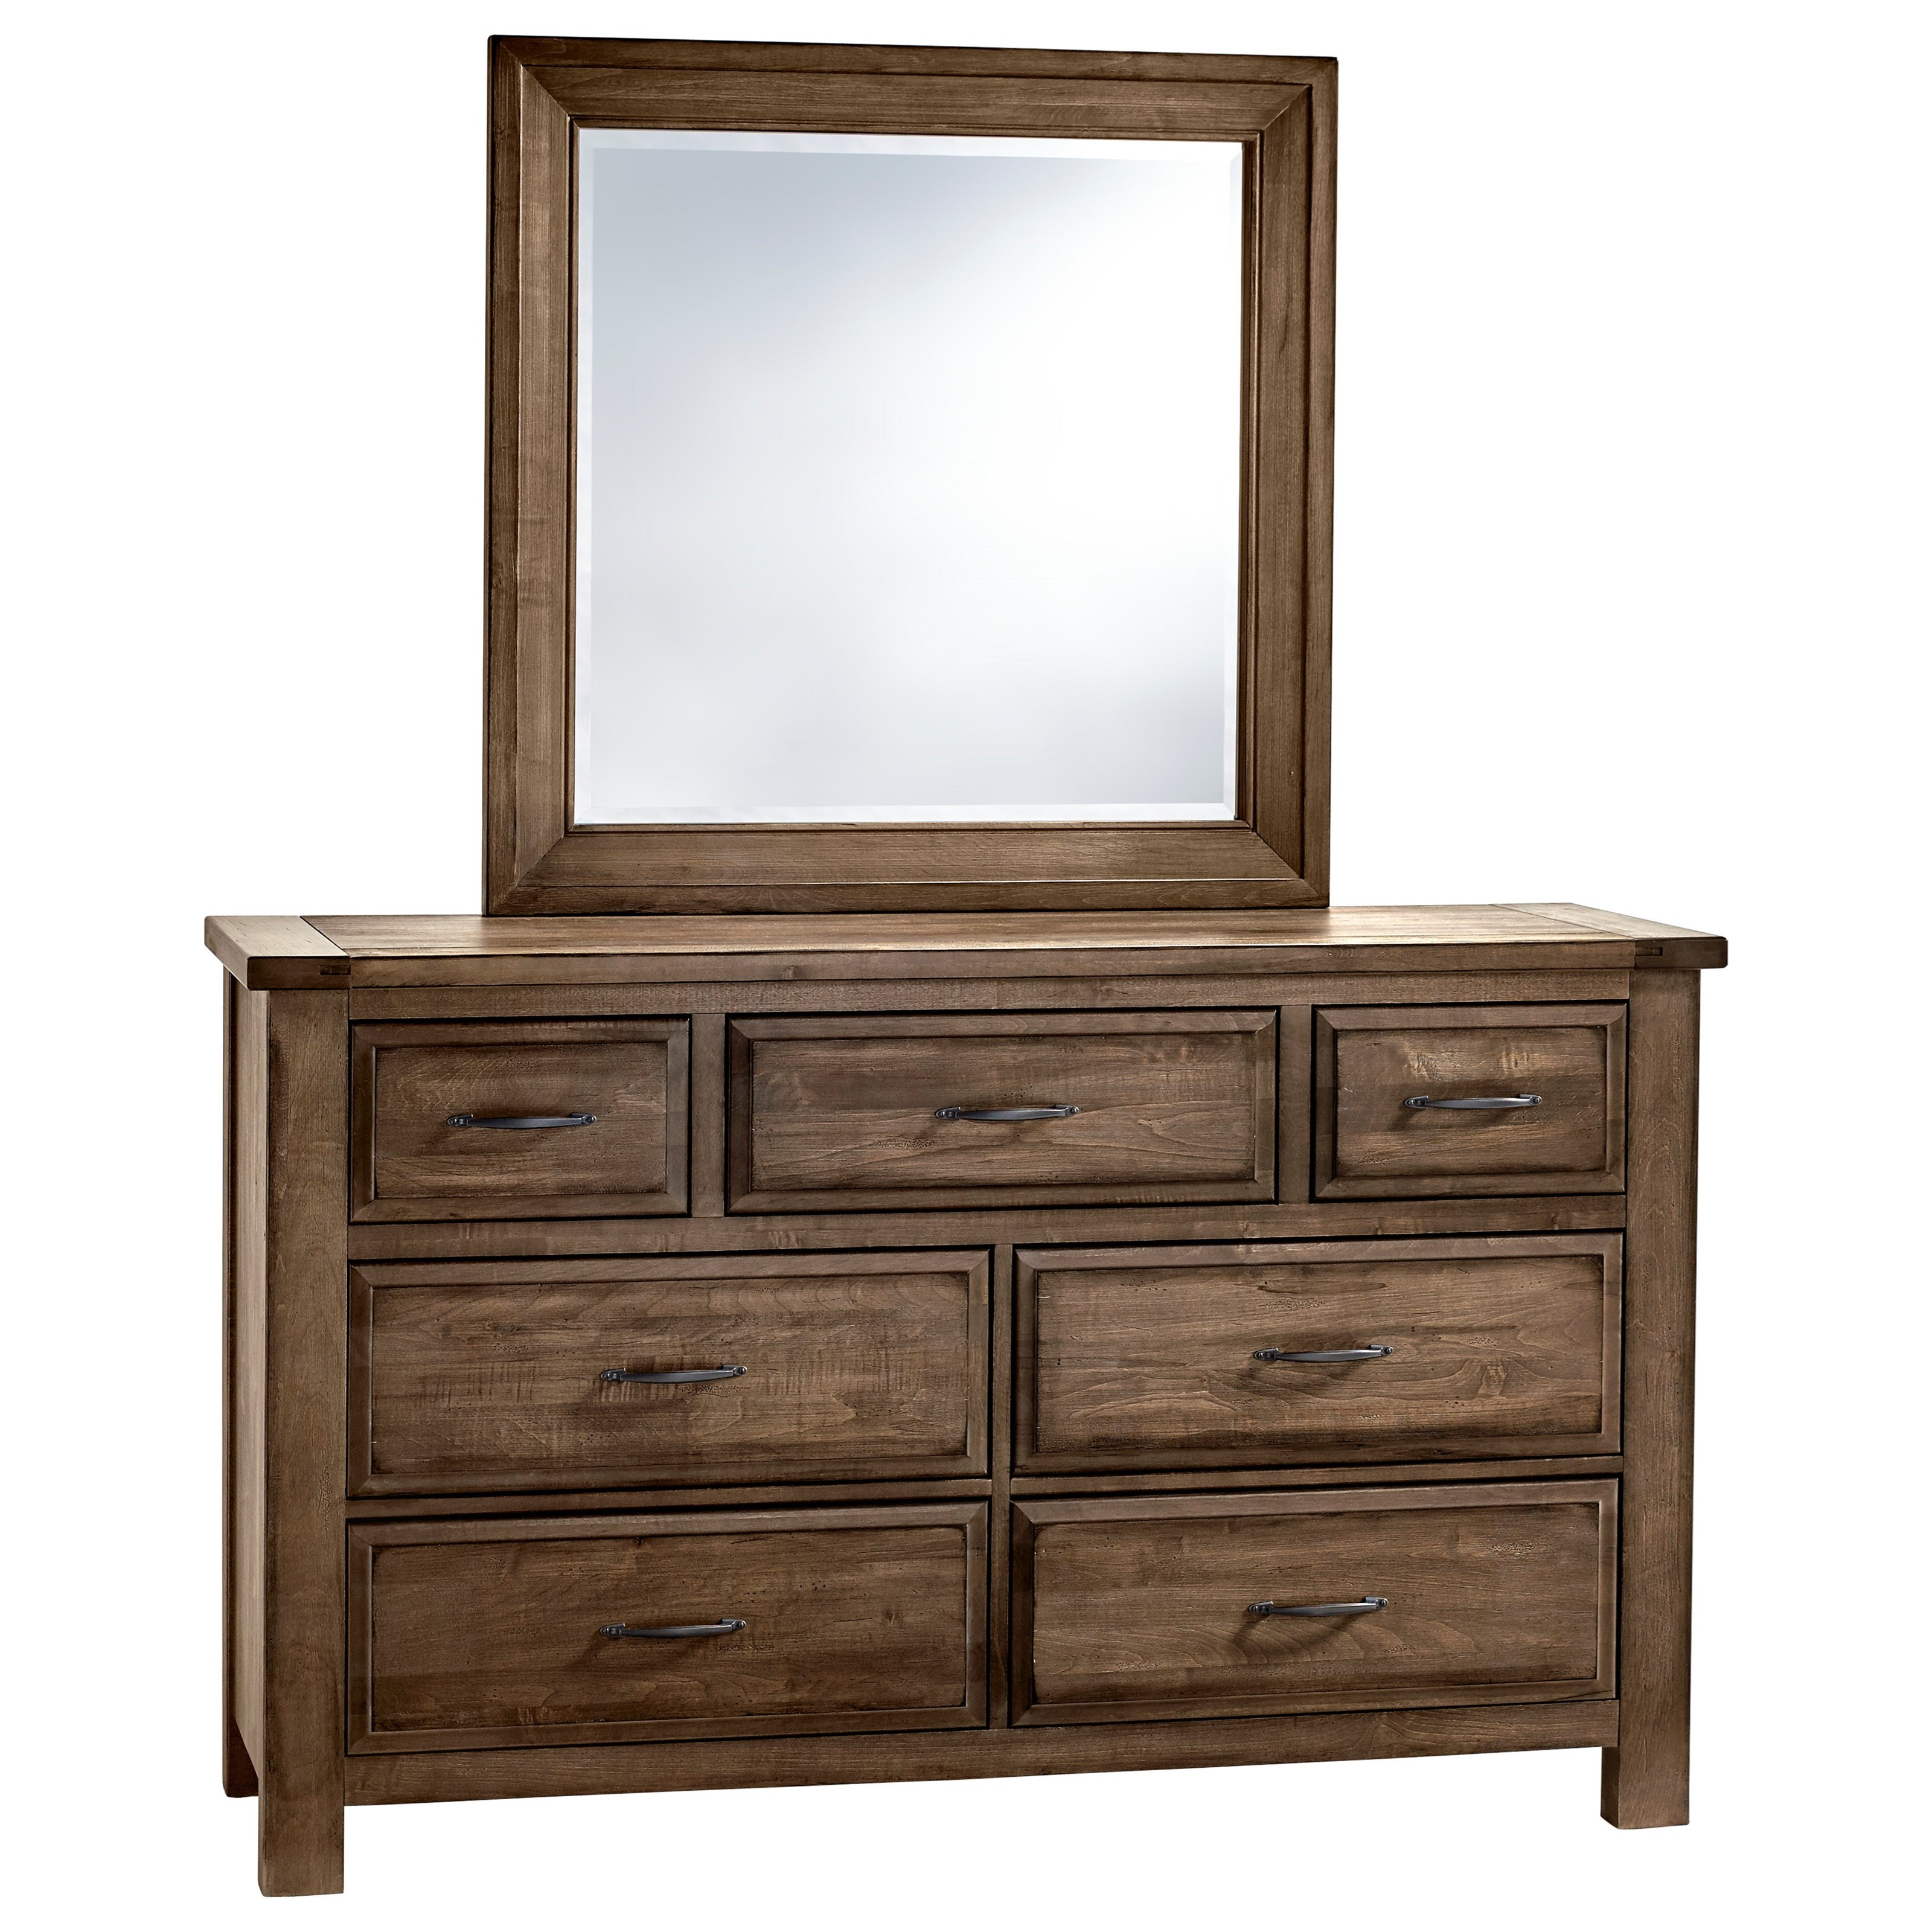 Artisan Post Maple Road Solid Wood Dresser Mirror